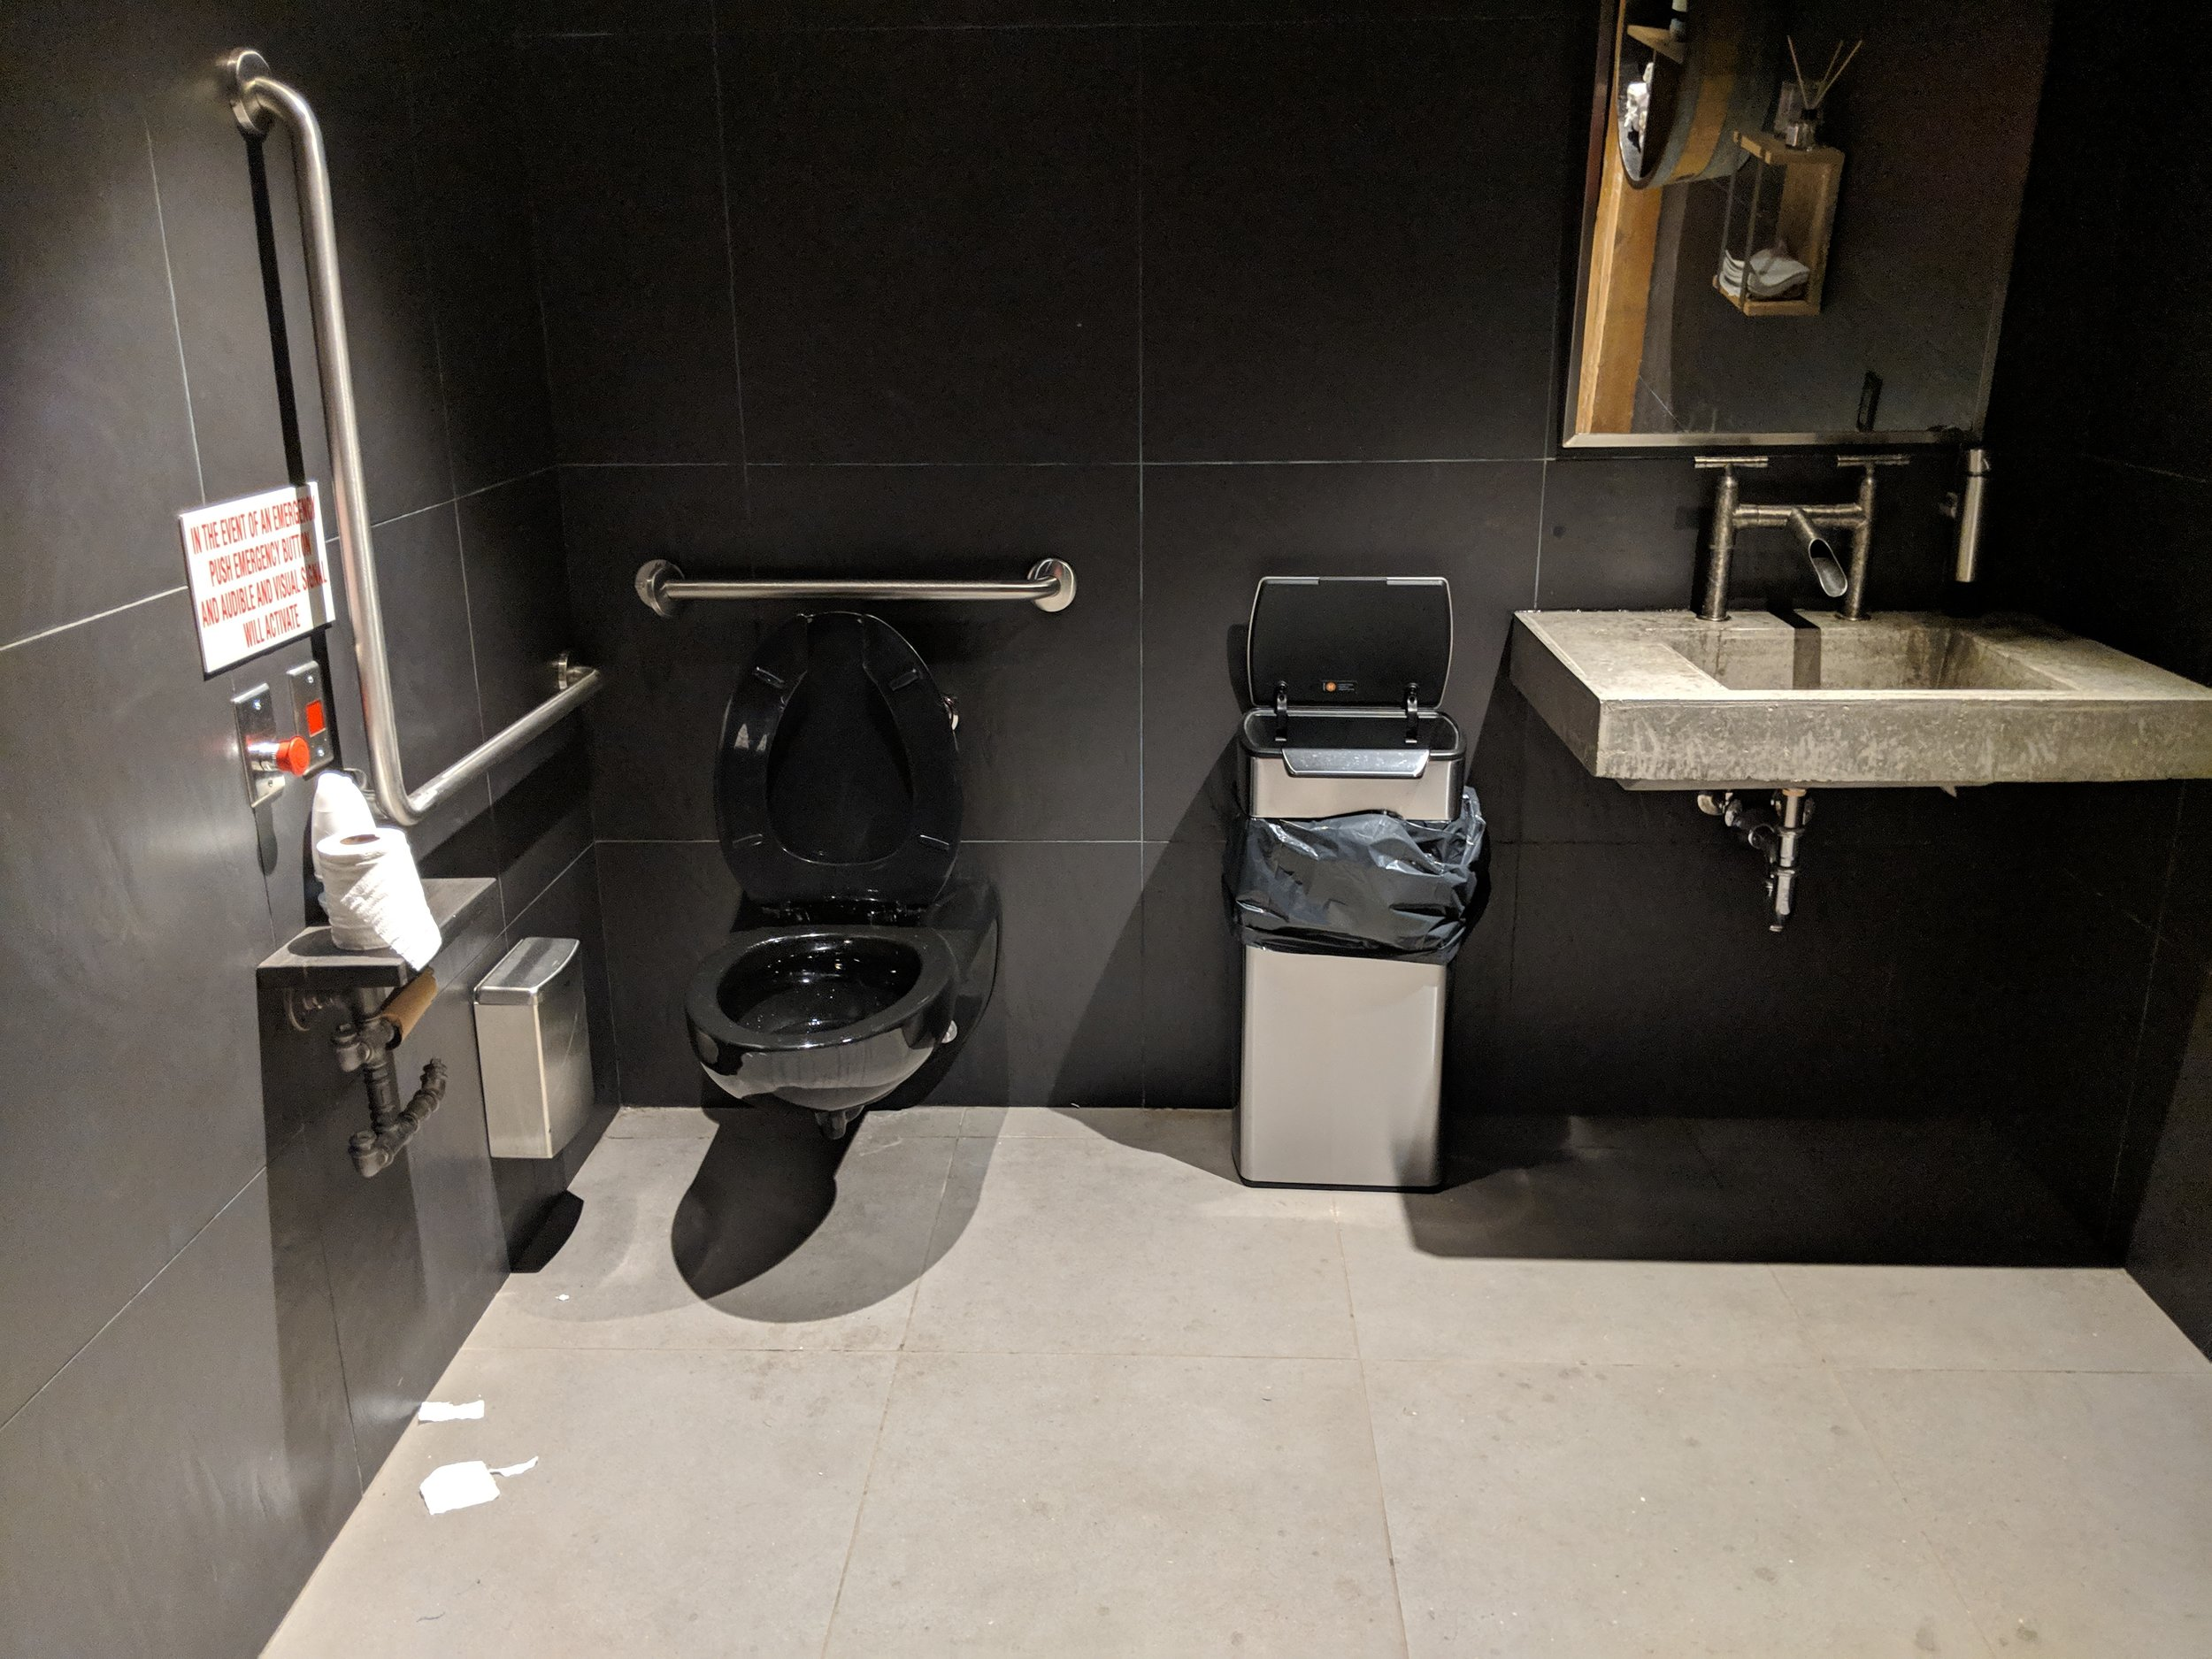 Picture of accessible washroom at the Spirit of York